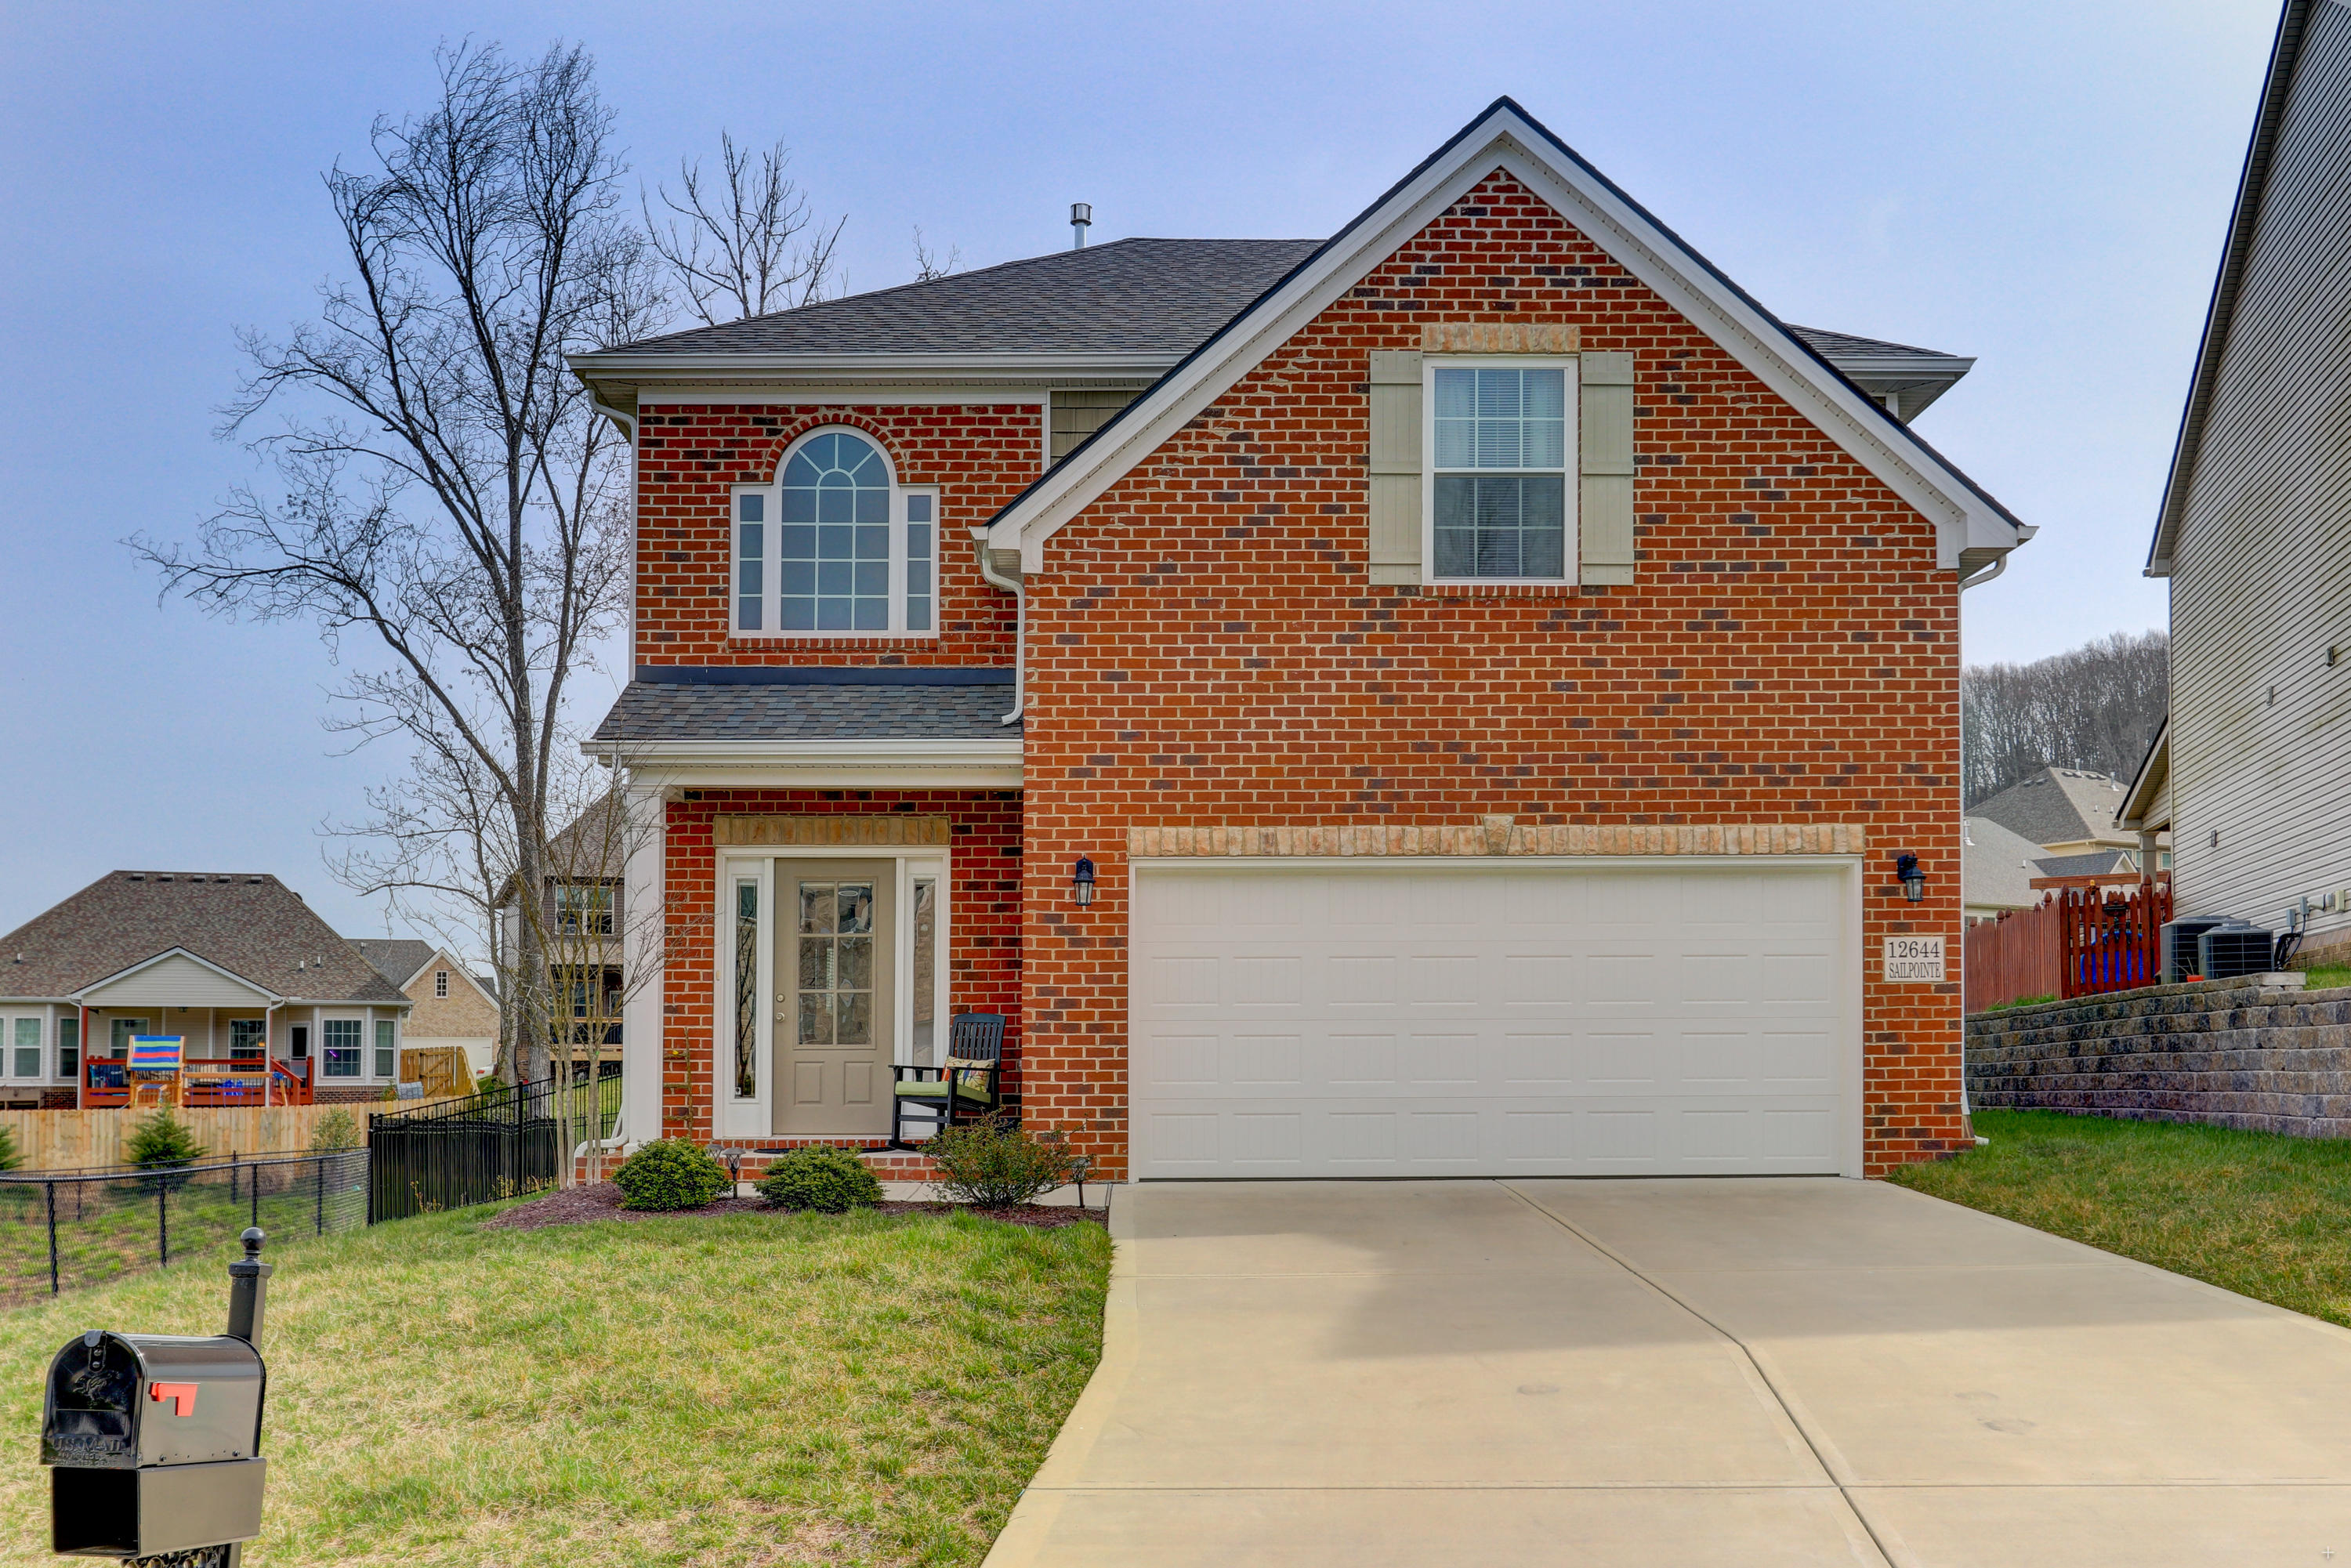 12644 Sailpointe Lane, Knoxville, Tennessee 37922, 3 Bedrooms Bedrooms, ,2 BathroomsBathrooms,Single Family,For Sale,Sailpointe,1118529